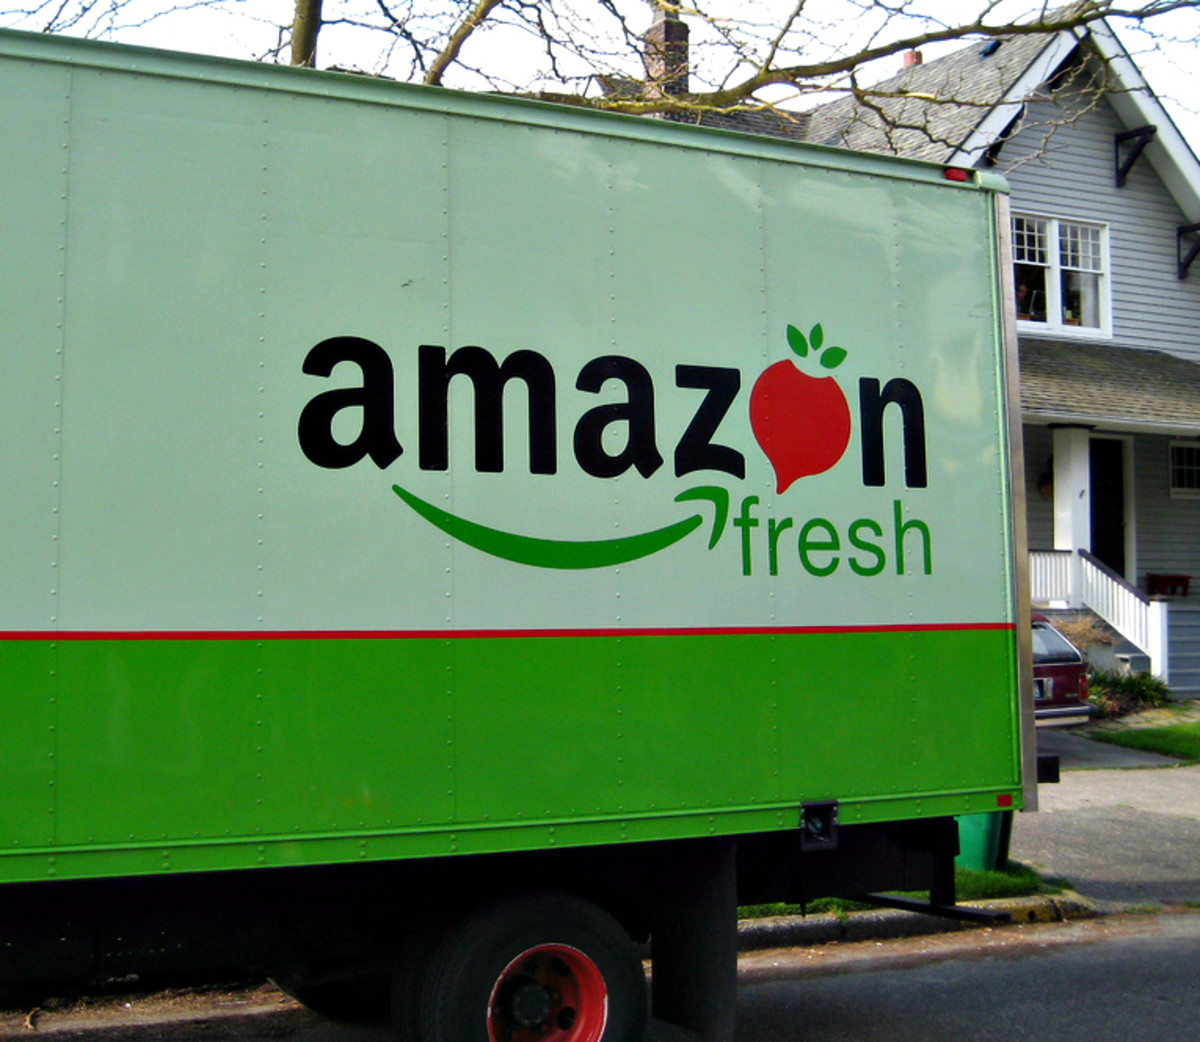 Amazon Grocery 57 Facts About Amazon Fresh Grocery Delivery Delishably